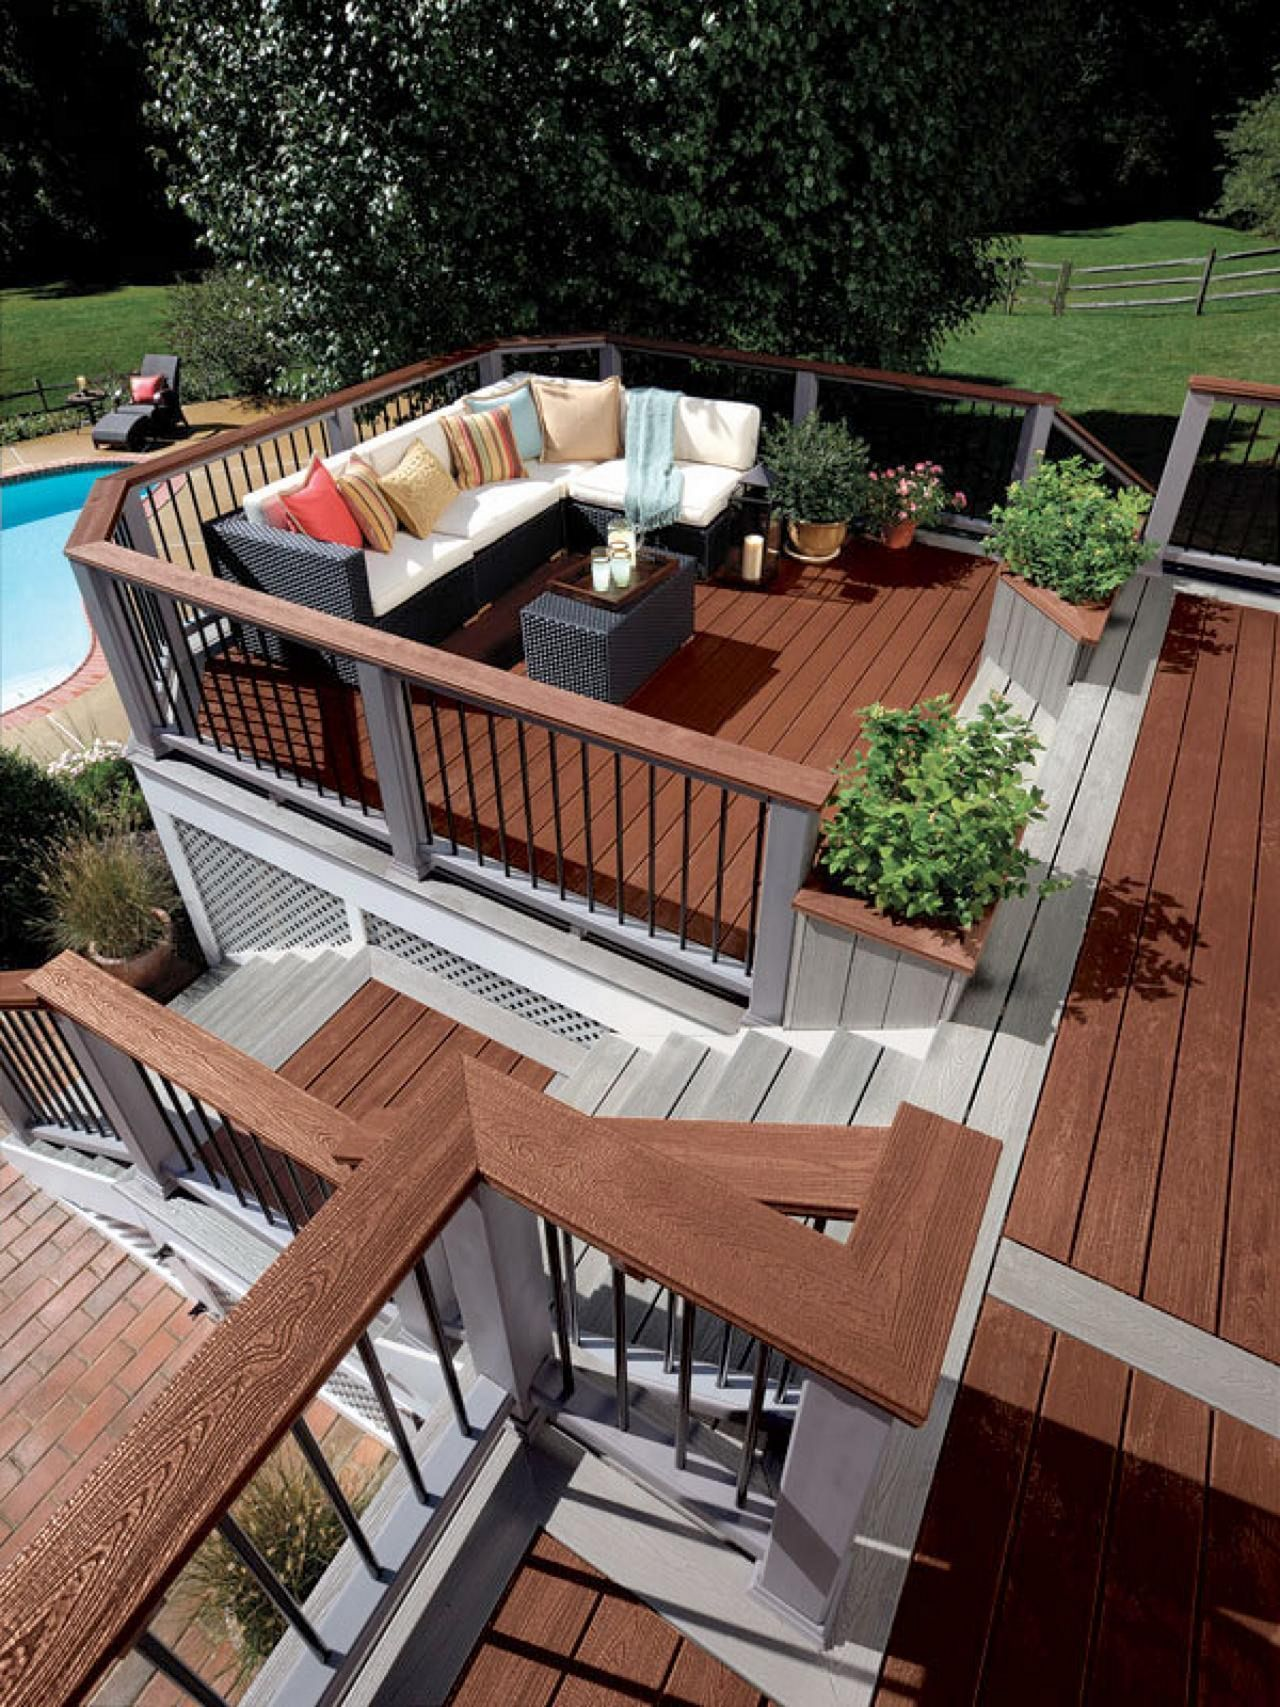 7 Beautiful And Interesting Wooden Deck